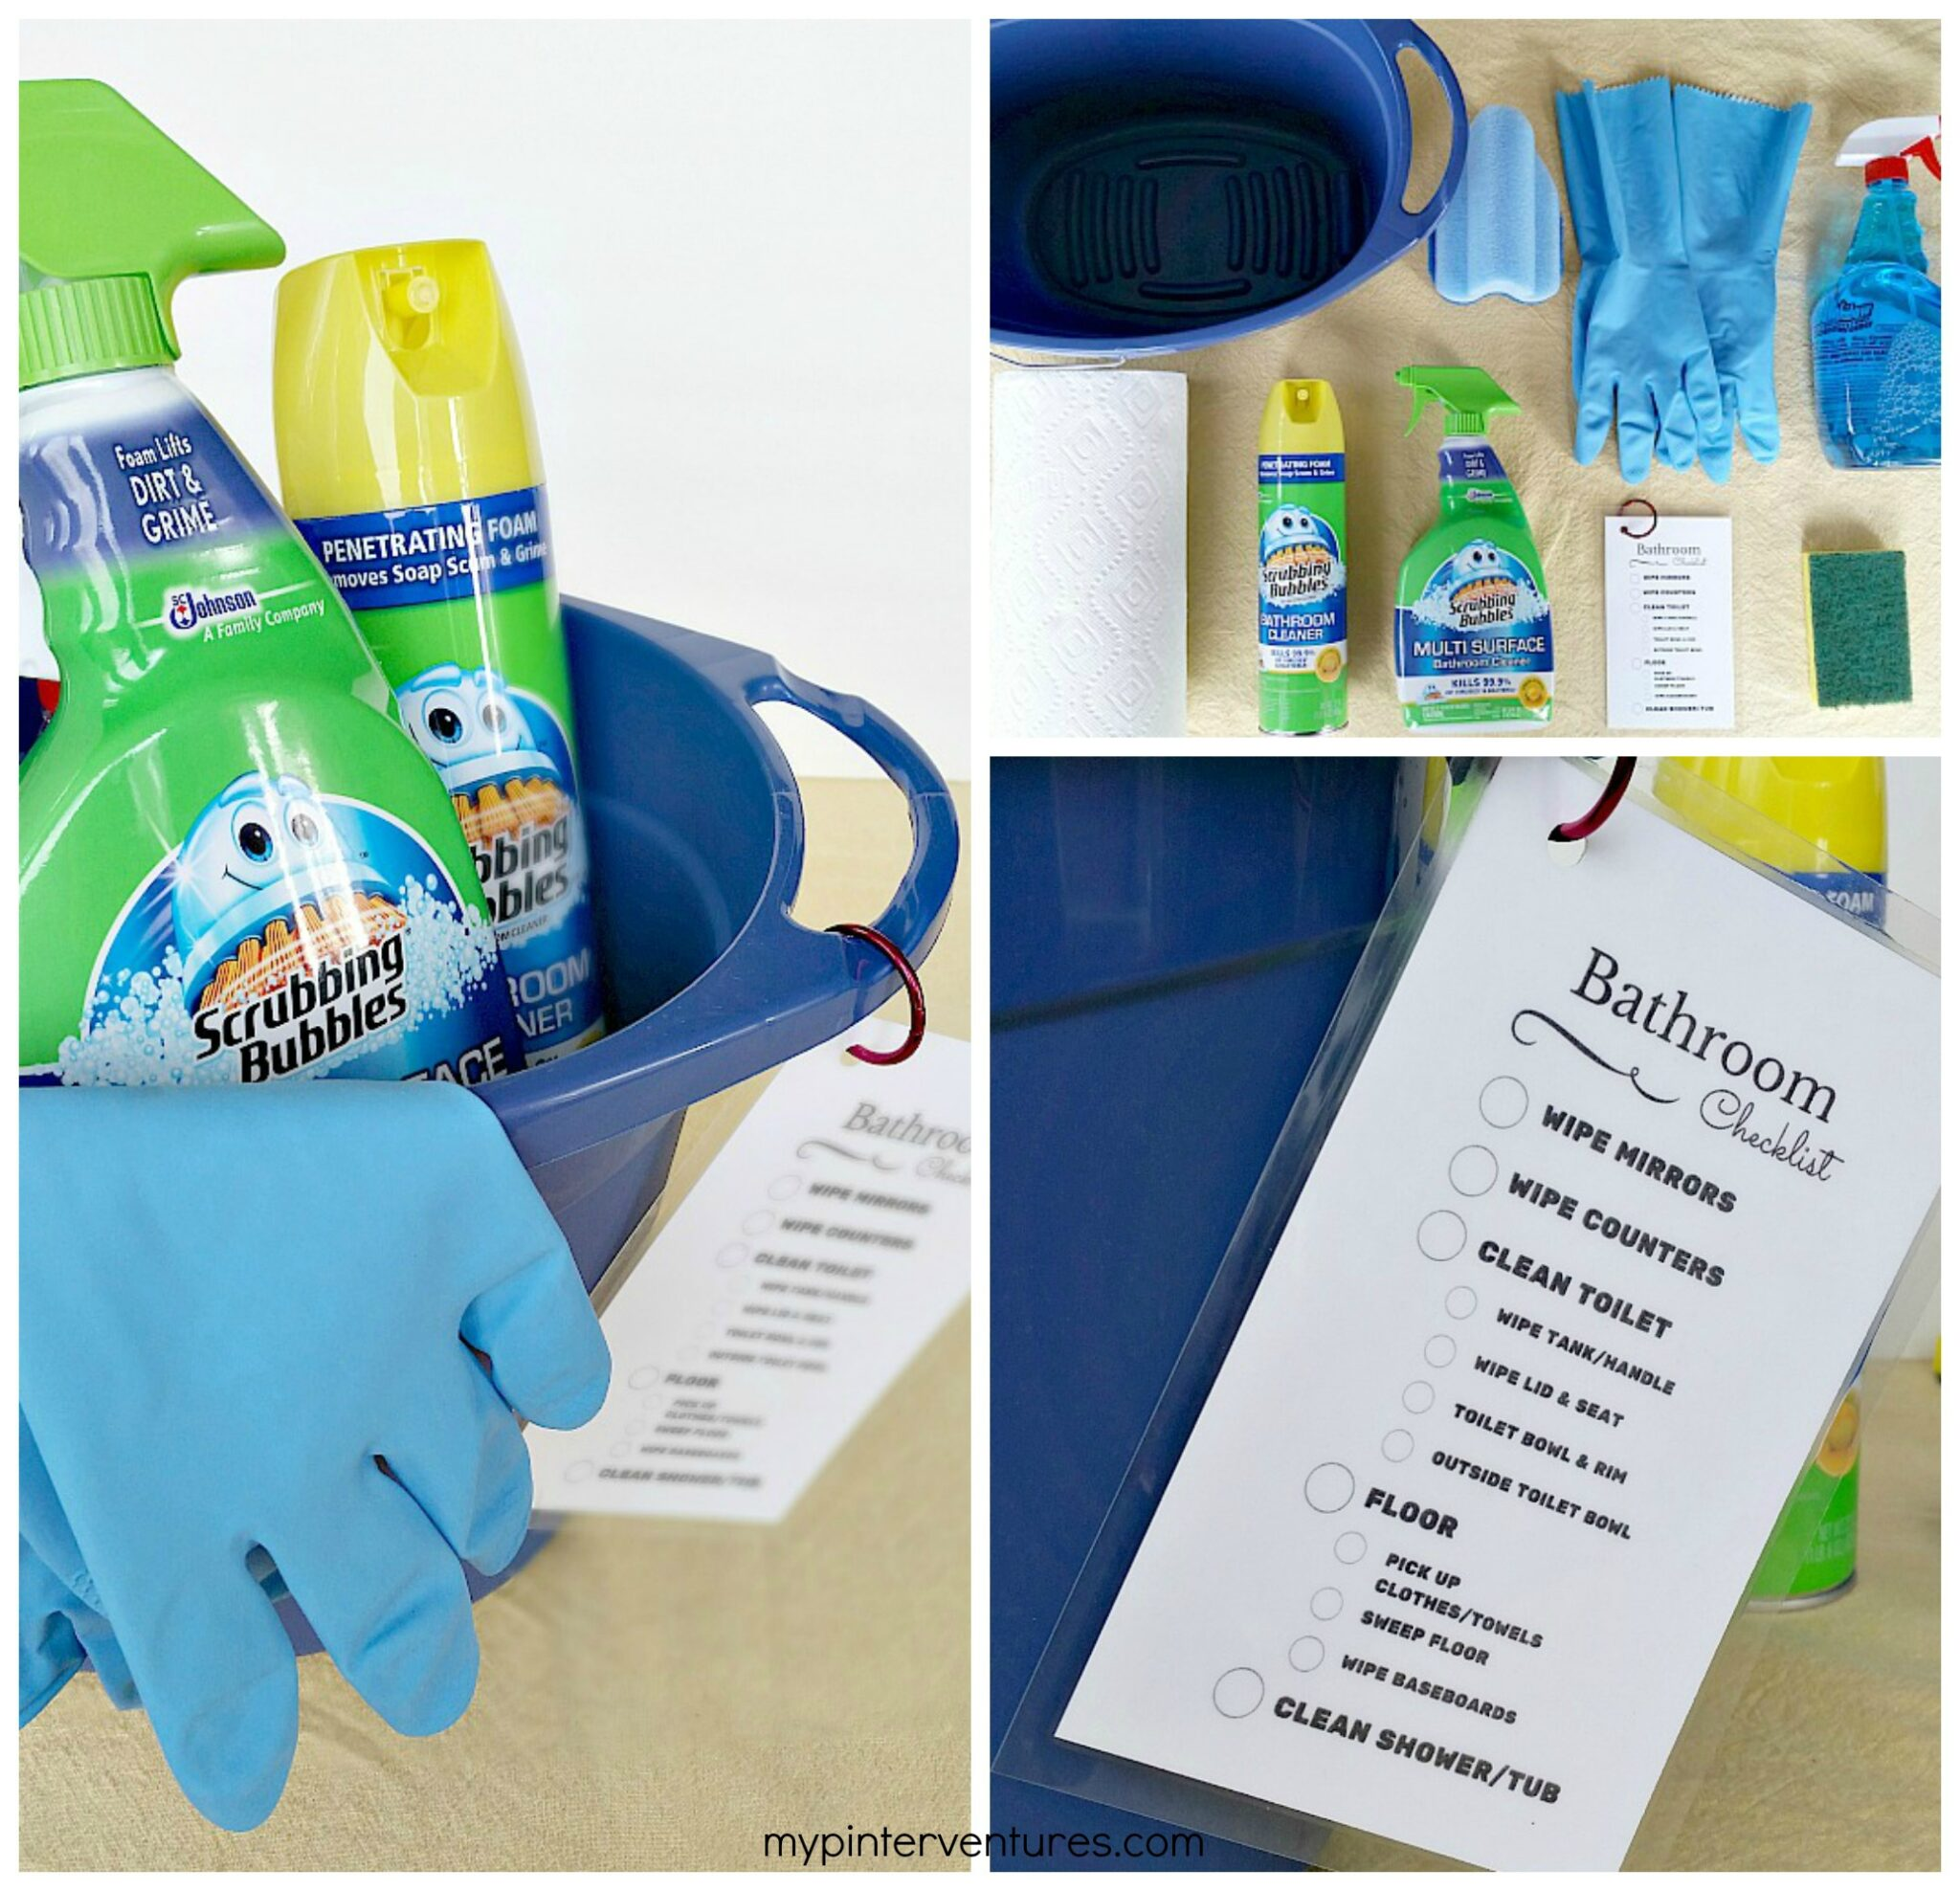 Bathroom Cleaning Kit with Printable Checklist #savewithbubbles